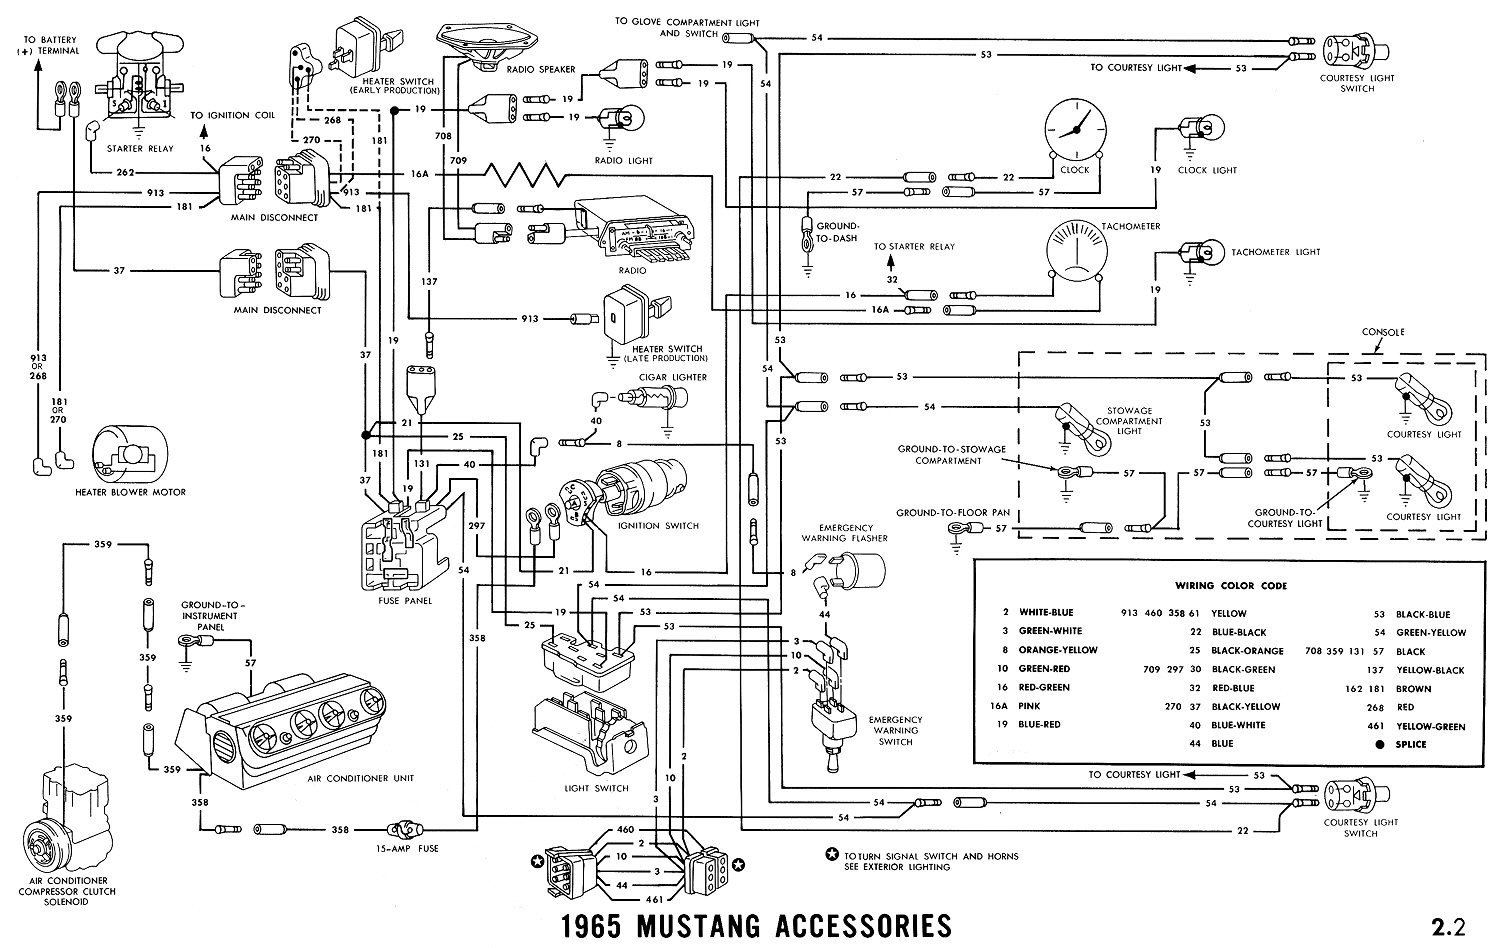 1965i 1965 mustang wiring diagrams average joe restoration 1967 mustang ignition wiring diagram at bayanpartner.co